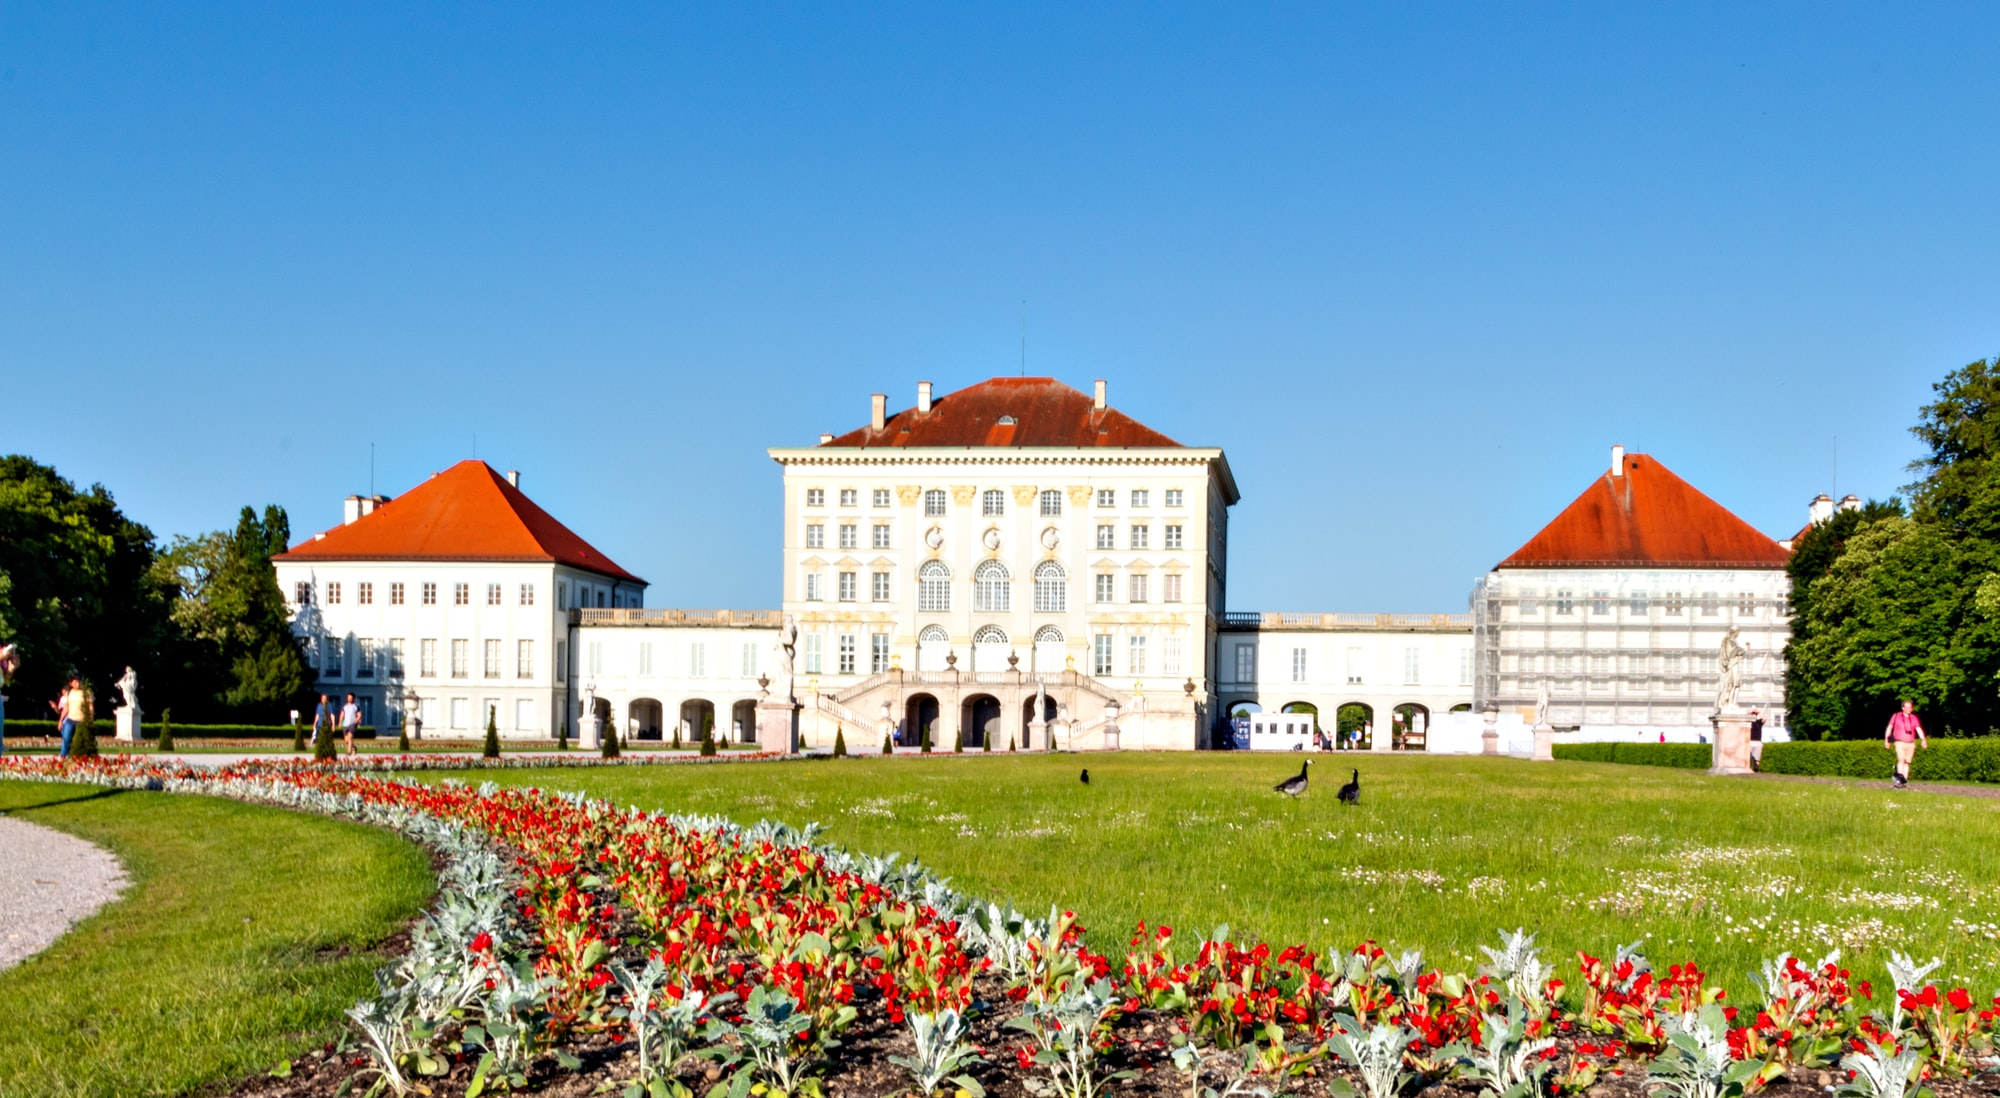 Nymphenburg Palace in Munich - Germany